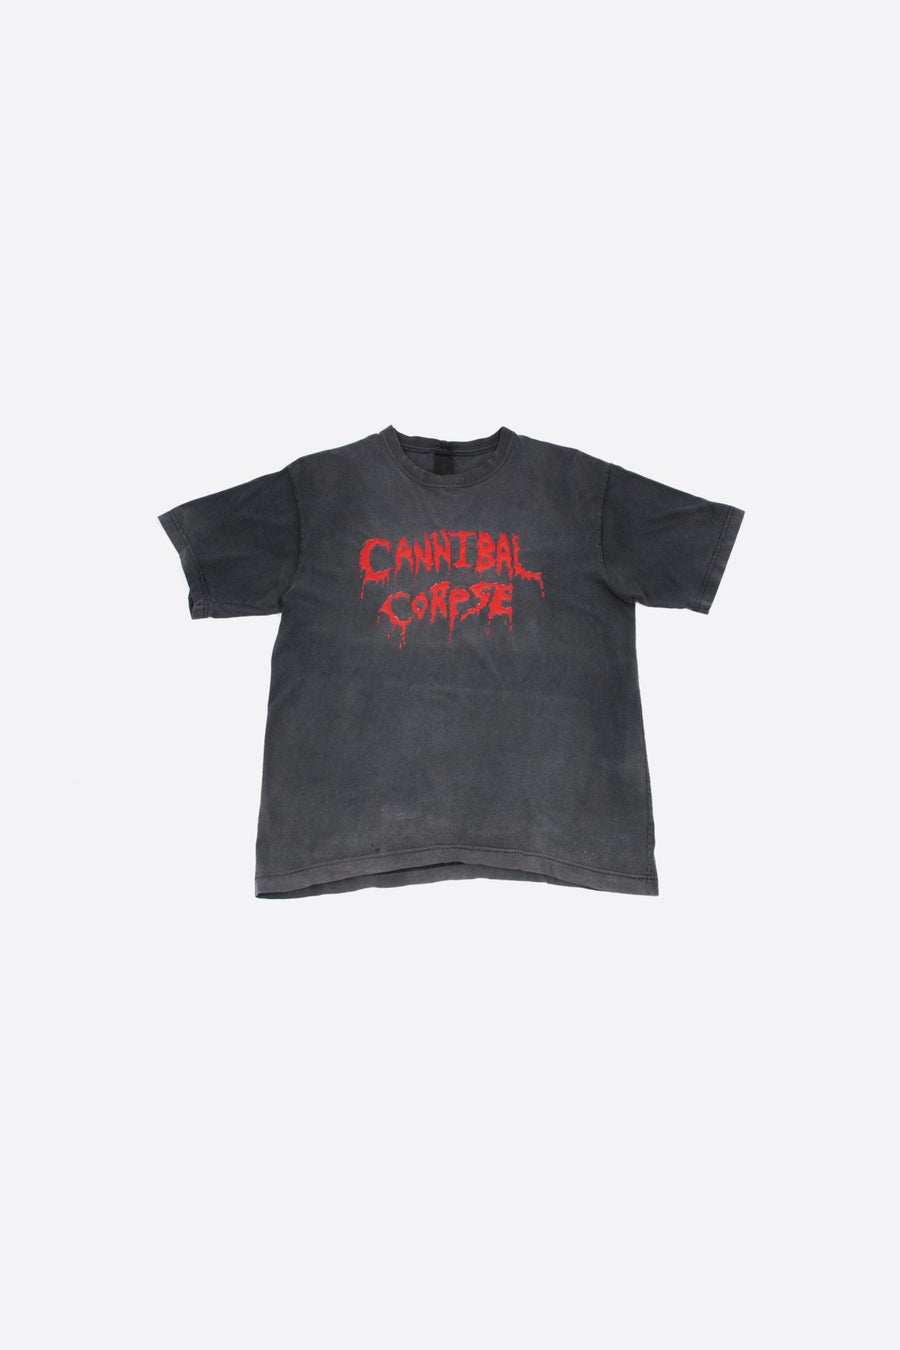 T-shirt Cannibal Corpse Faded - WASTED PARIS